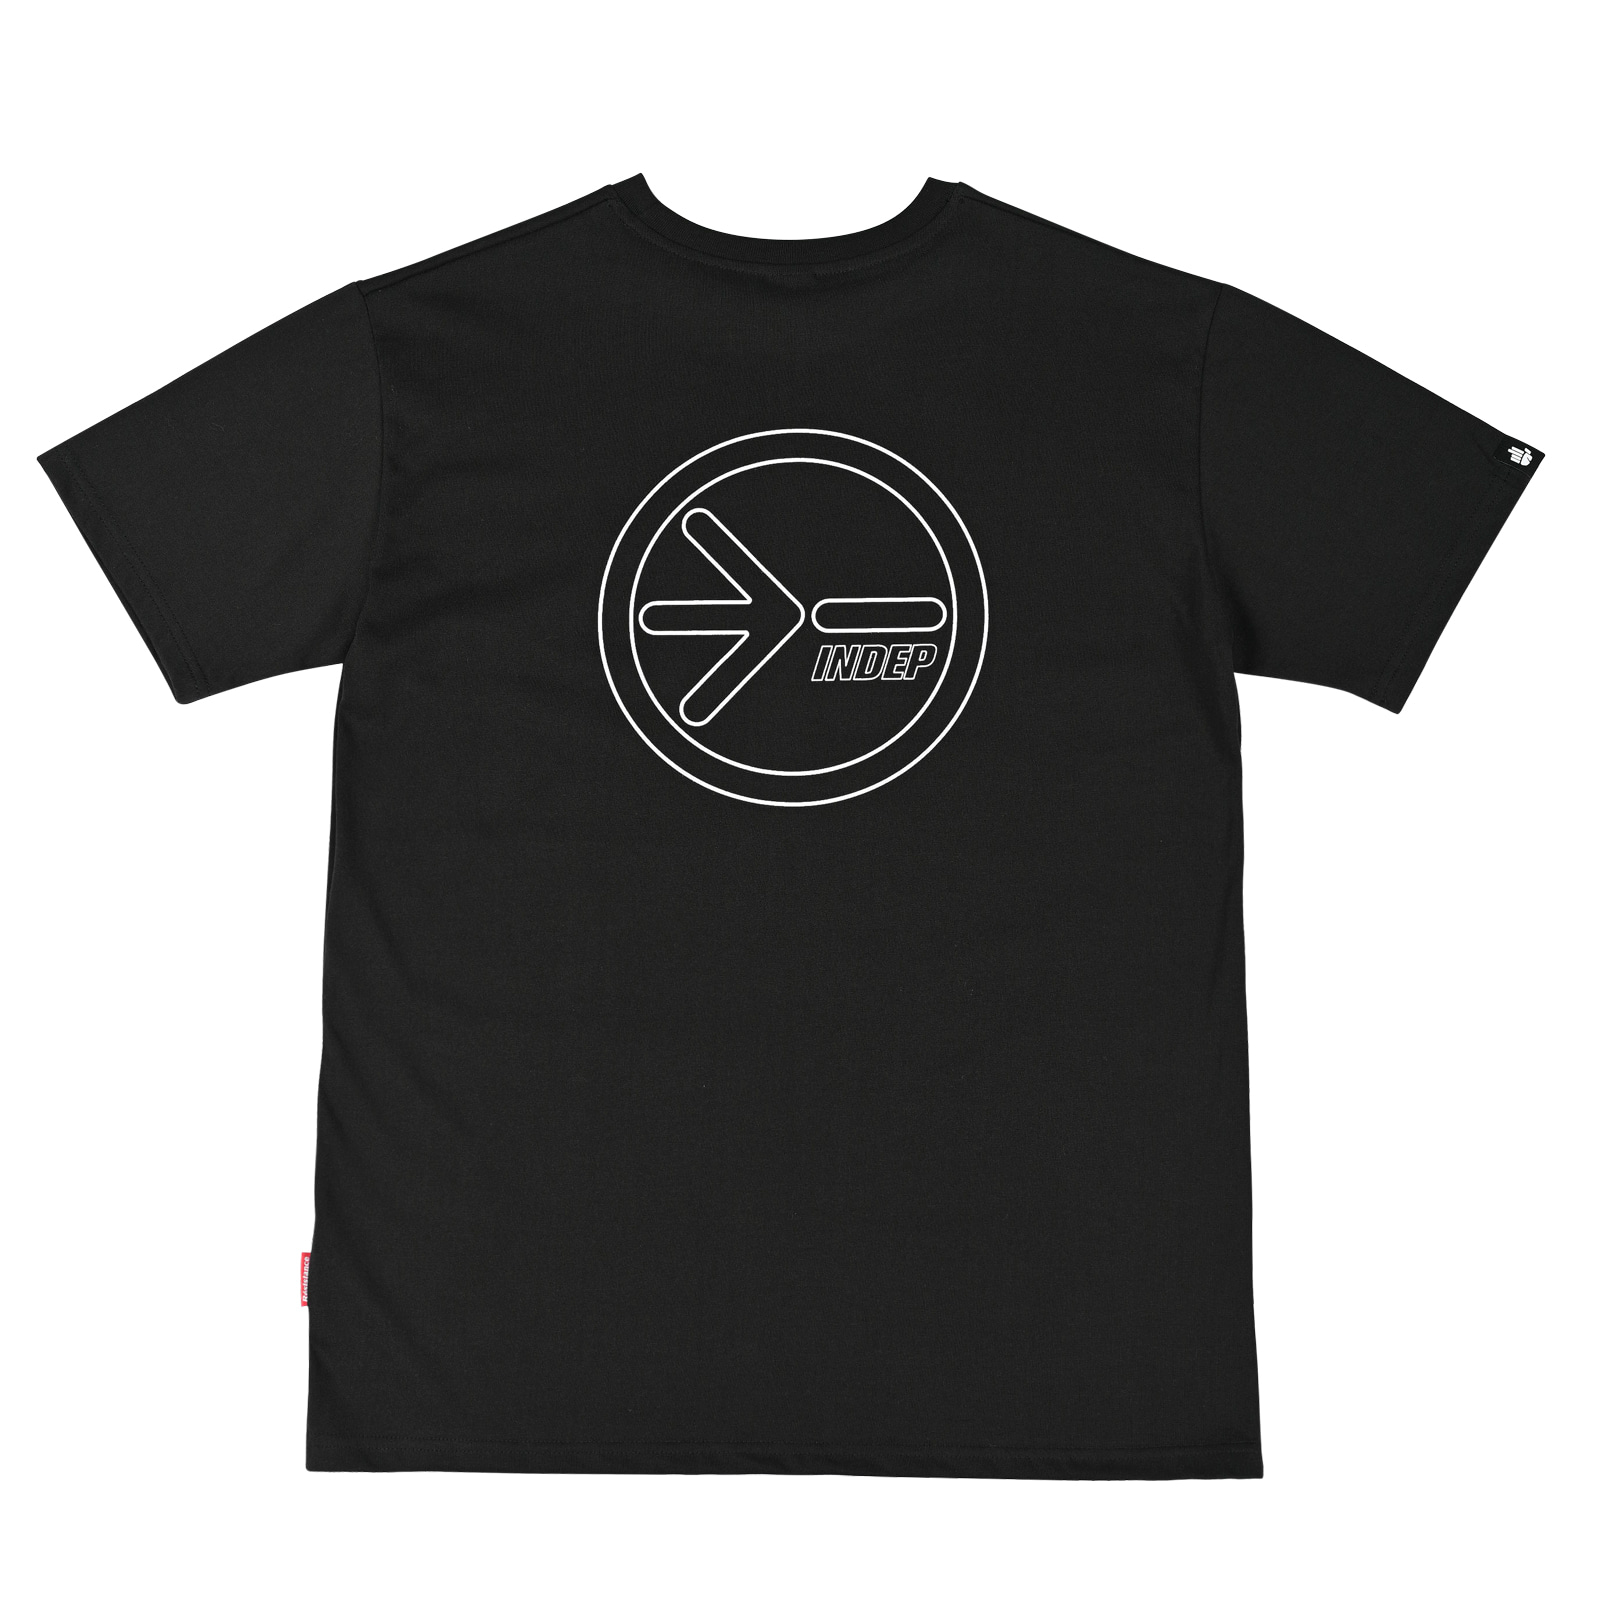 "Indep ""3.1 PEACE"" Black T-shirt"